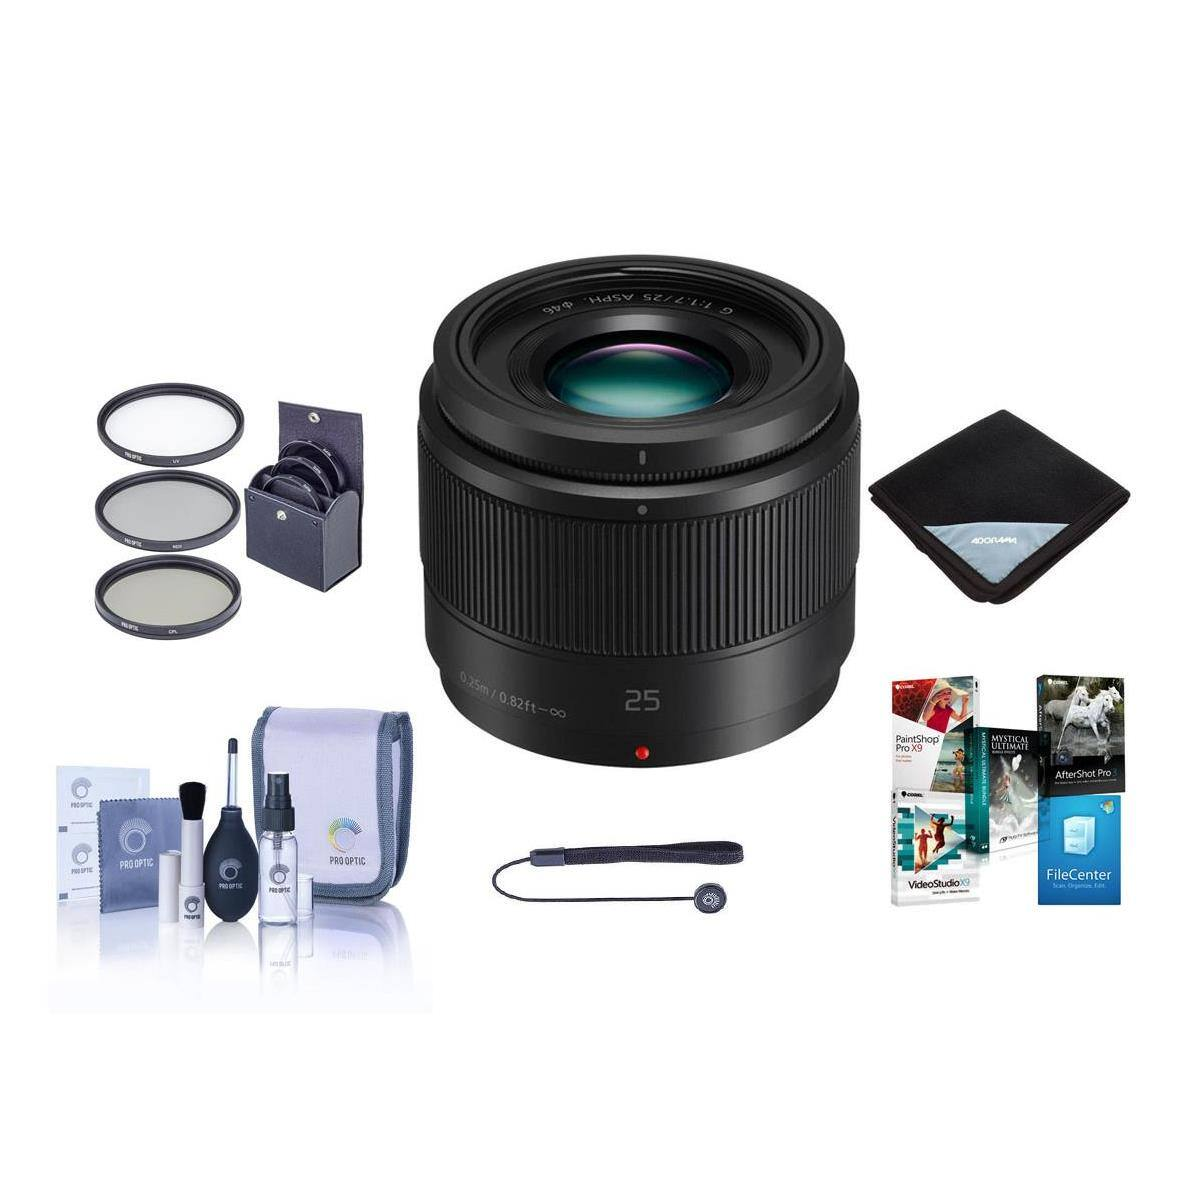 Panasonic 25mm f/1.7 Lumix G Aspherical Lens for Micro 4/3 System Bundle